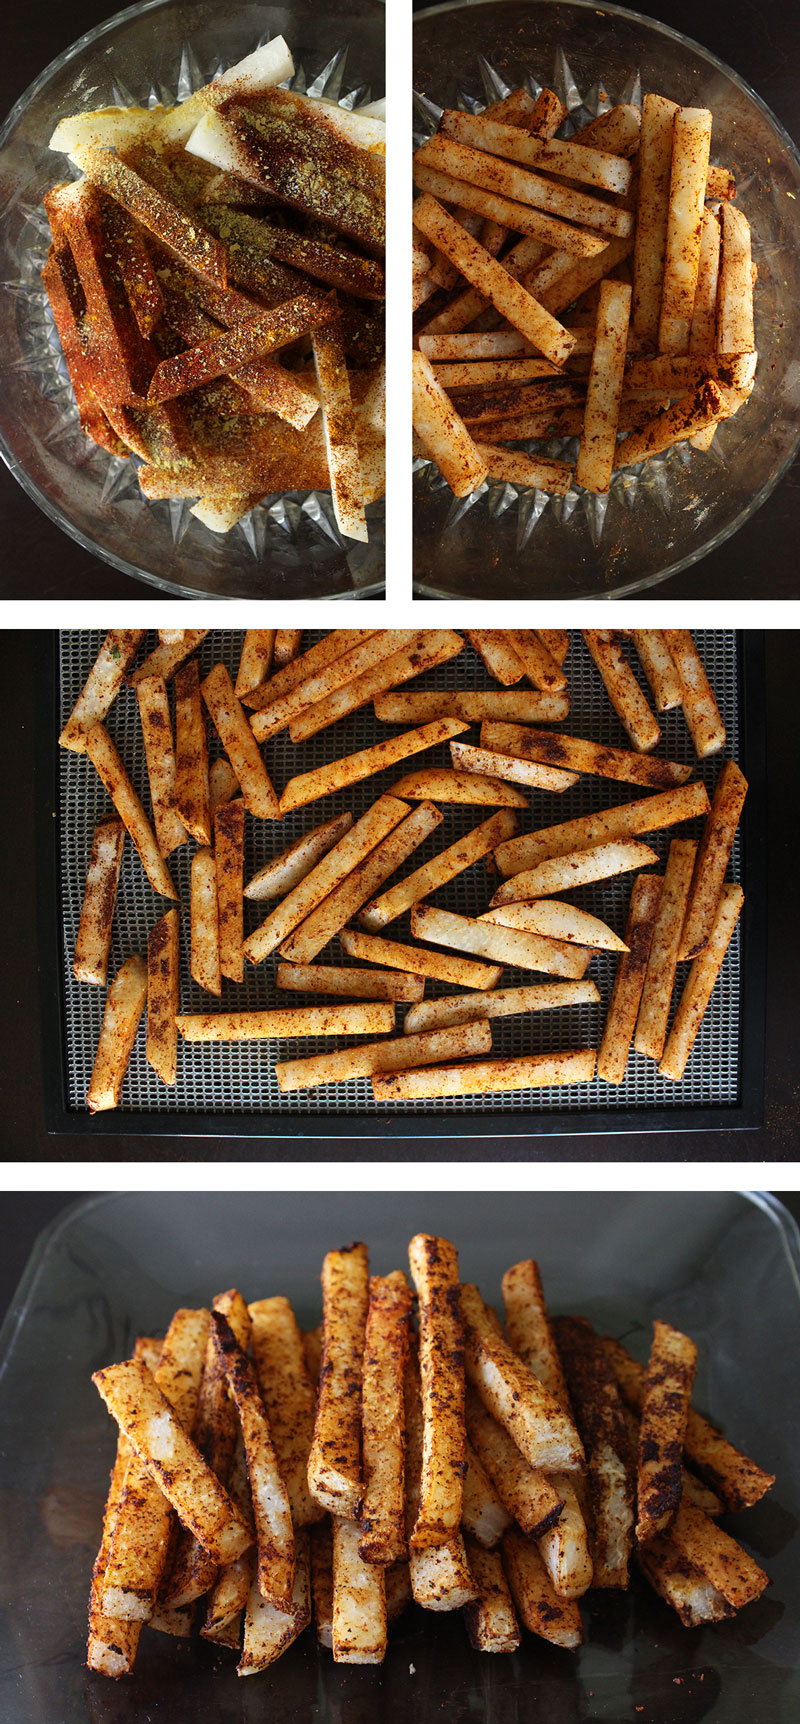 jicama-chili-fries